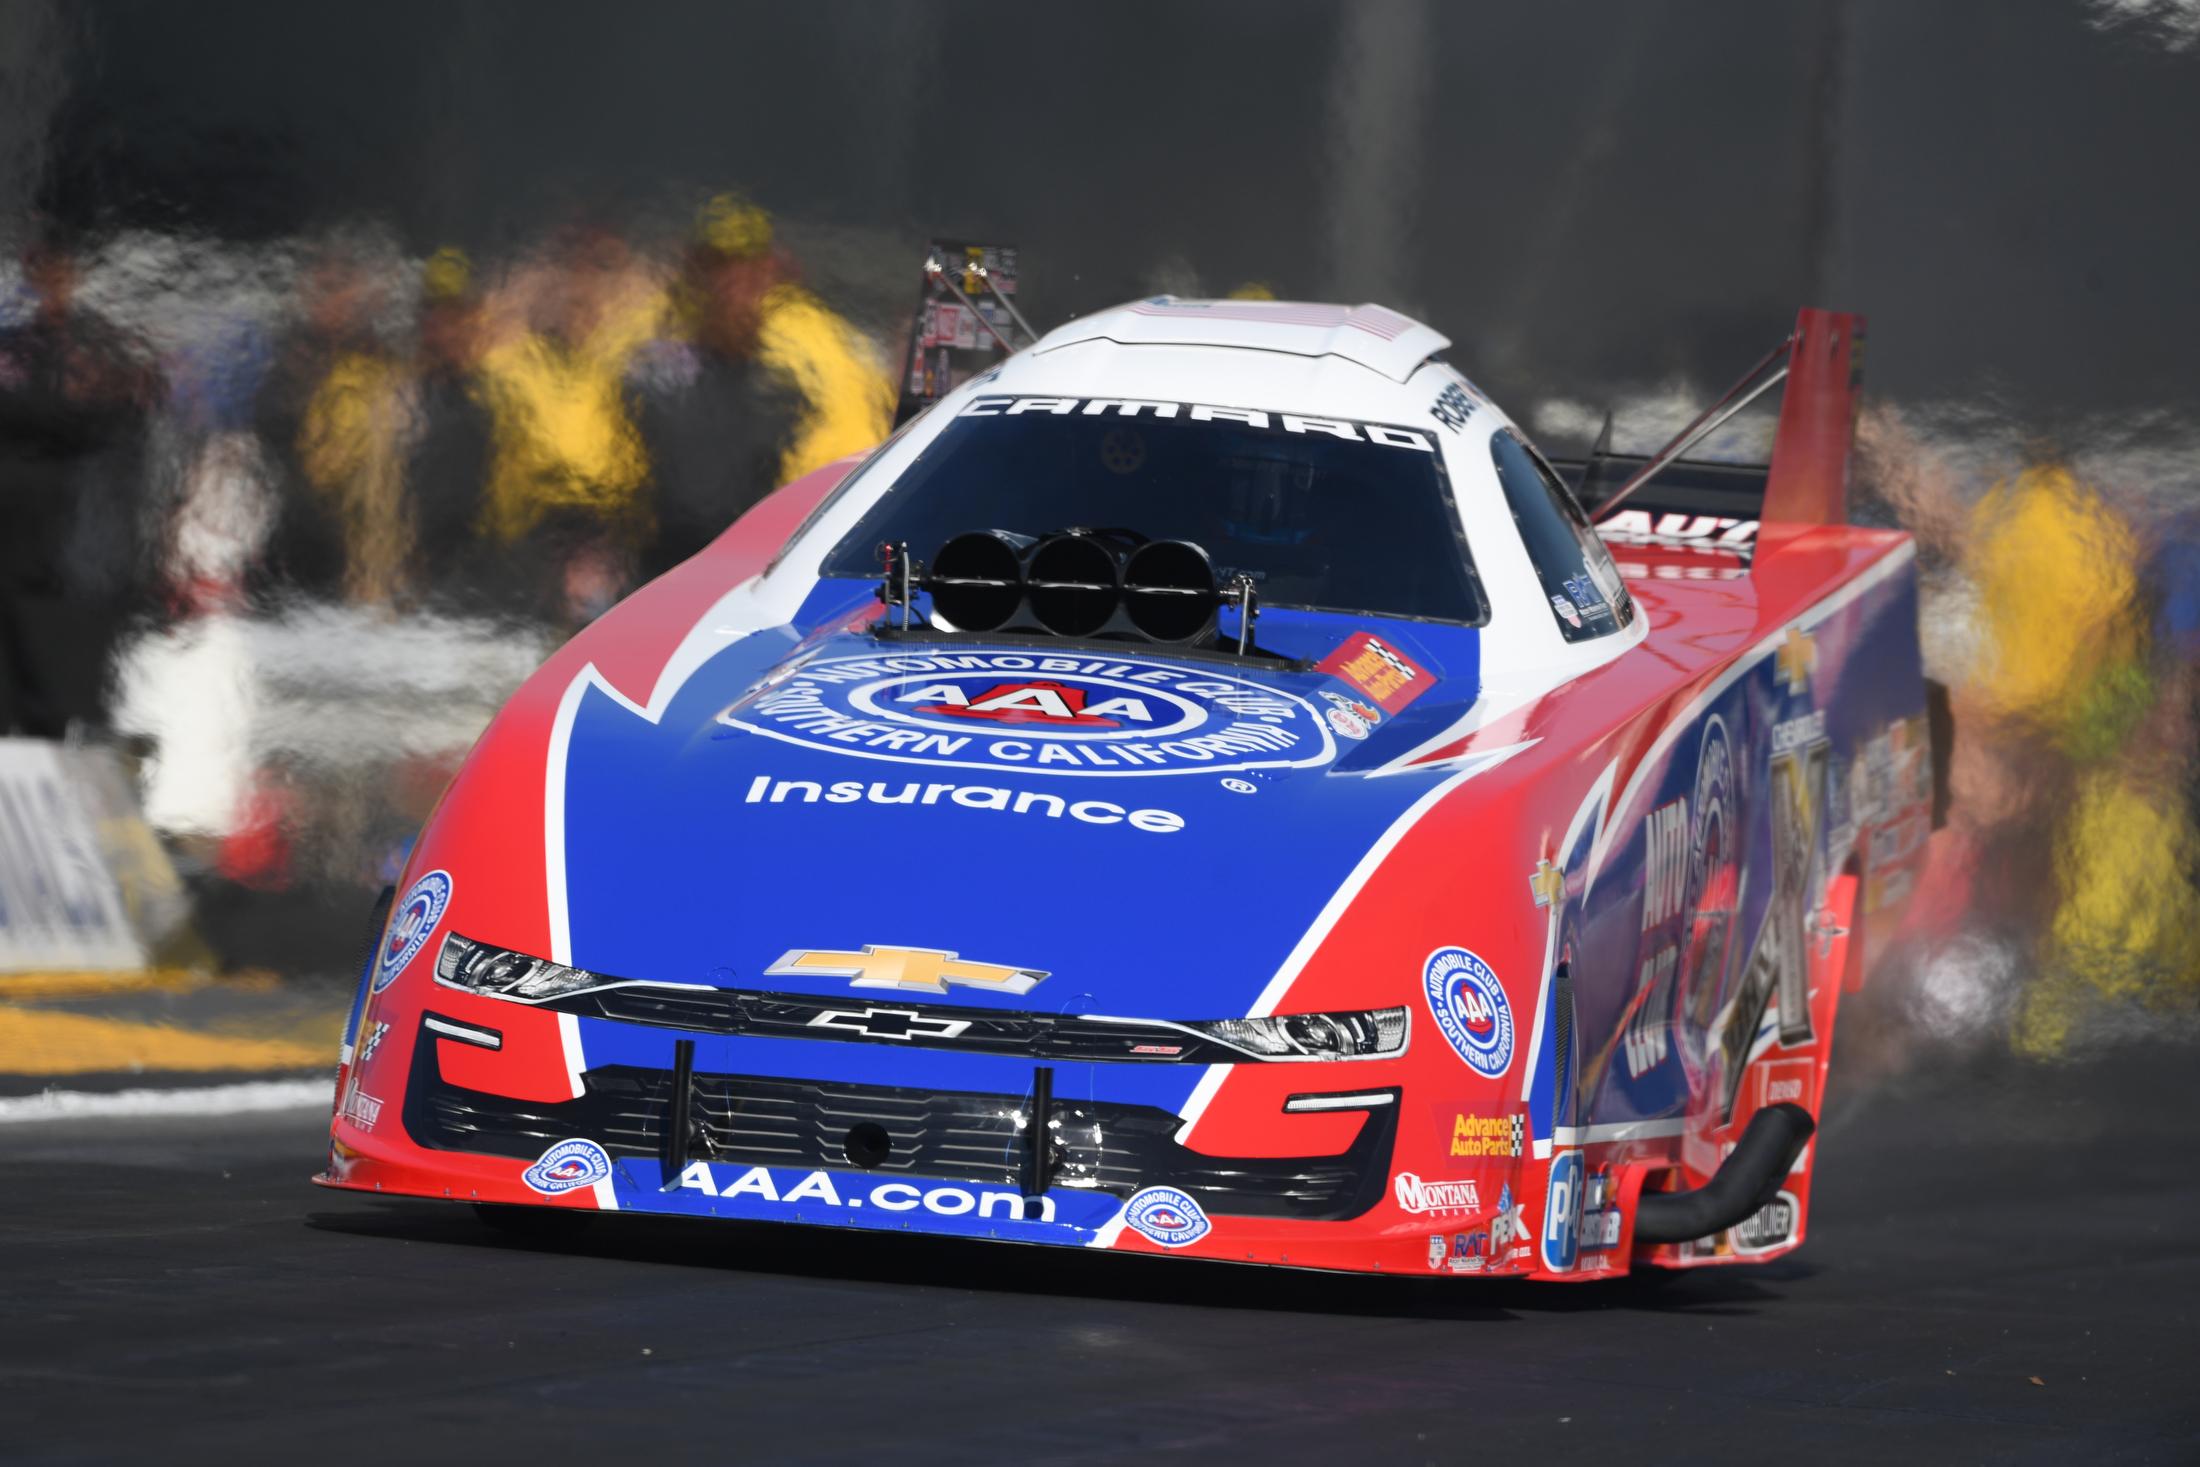 NHRA's 2019 Season Kicked Off With Torrence, Hight, And Enders Taking The Top Spots So Far